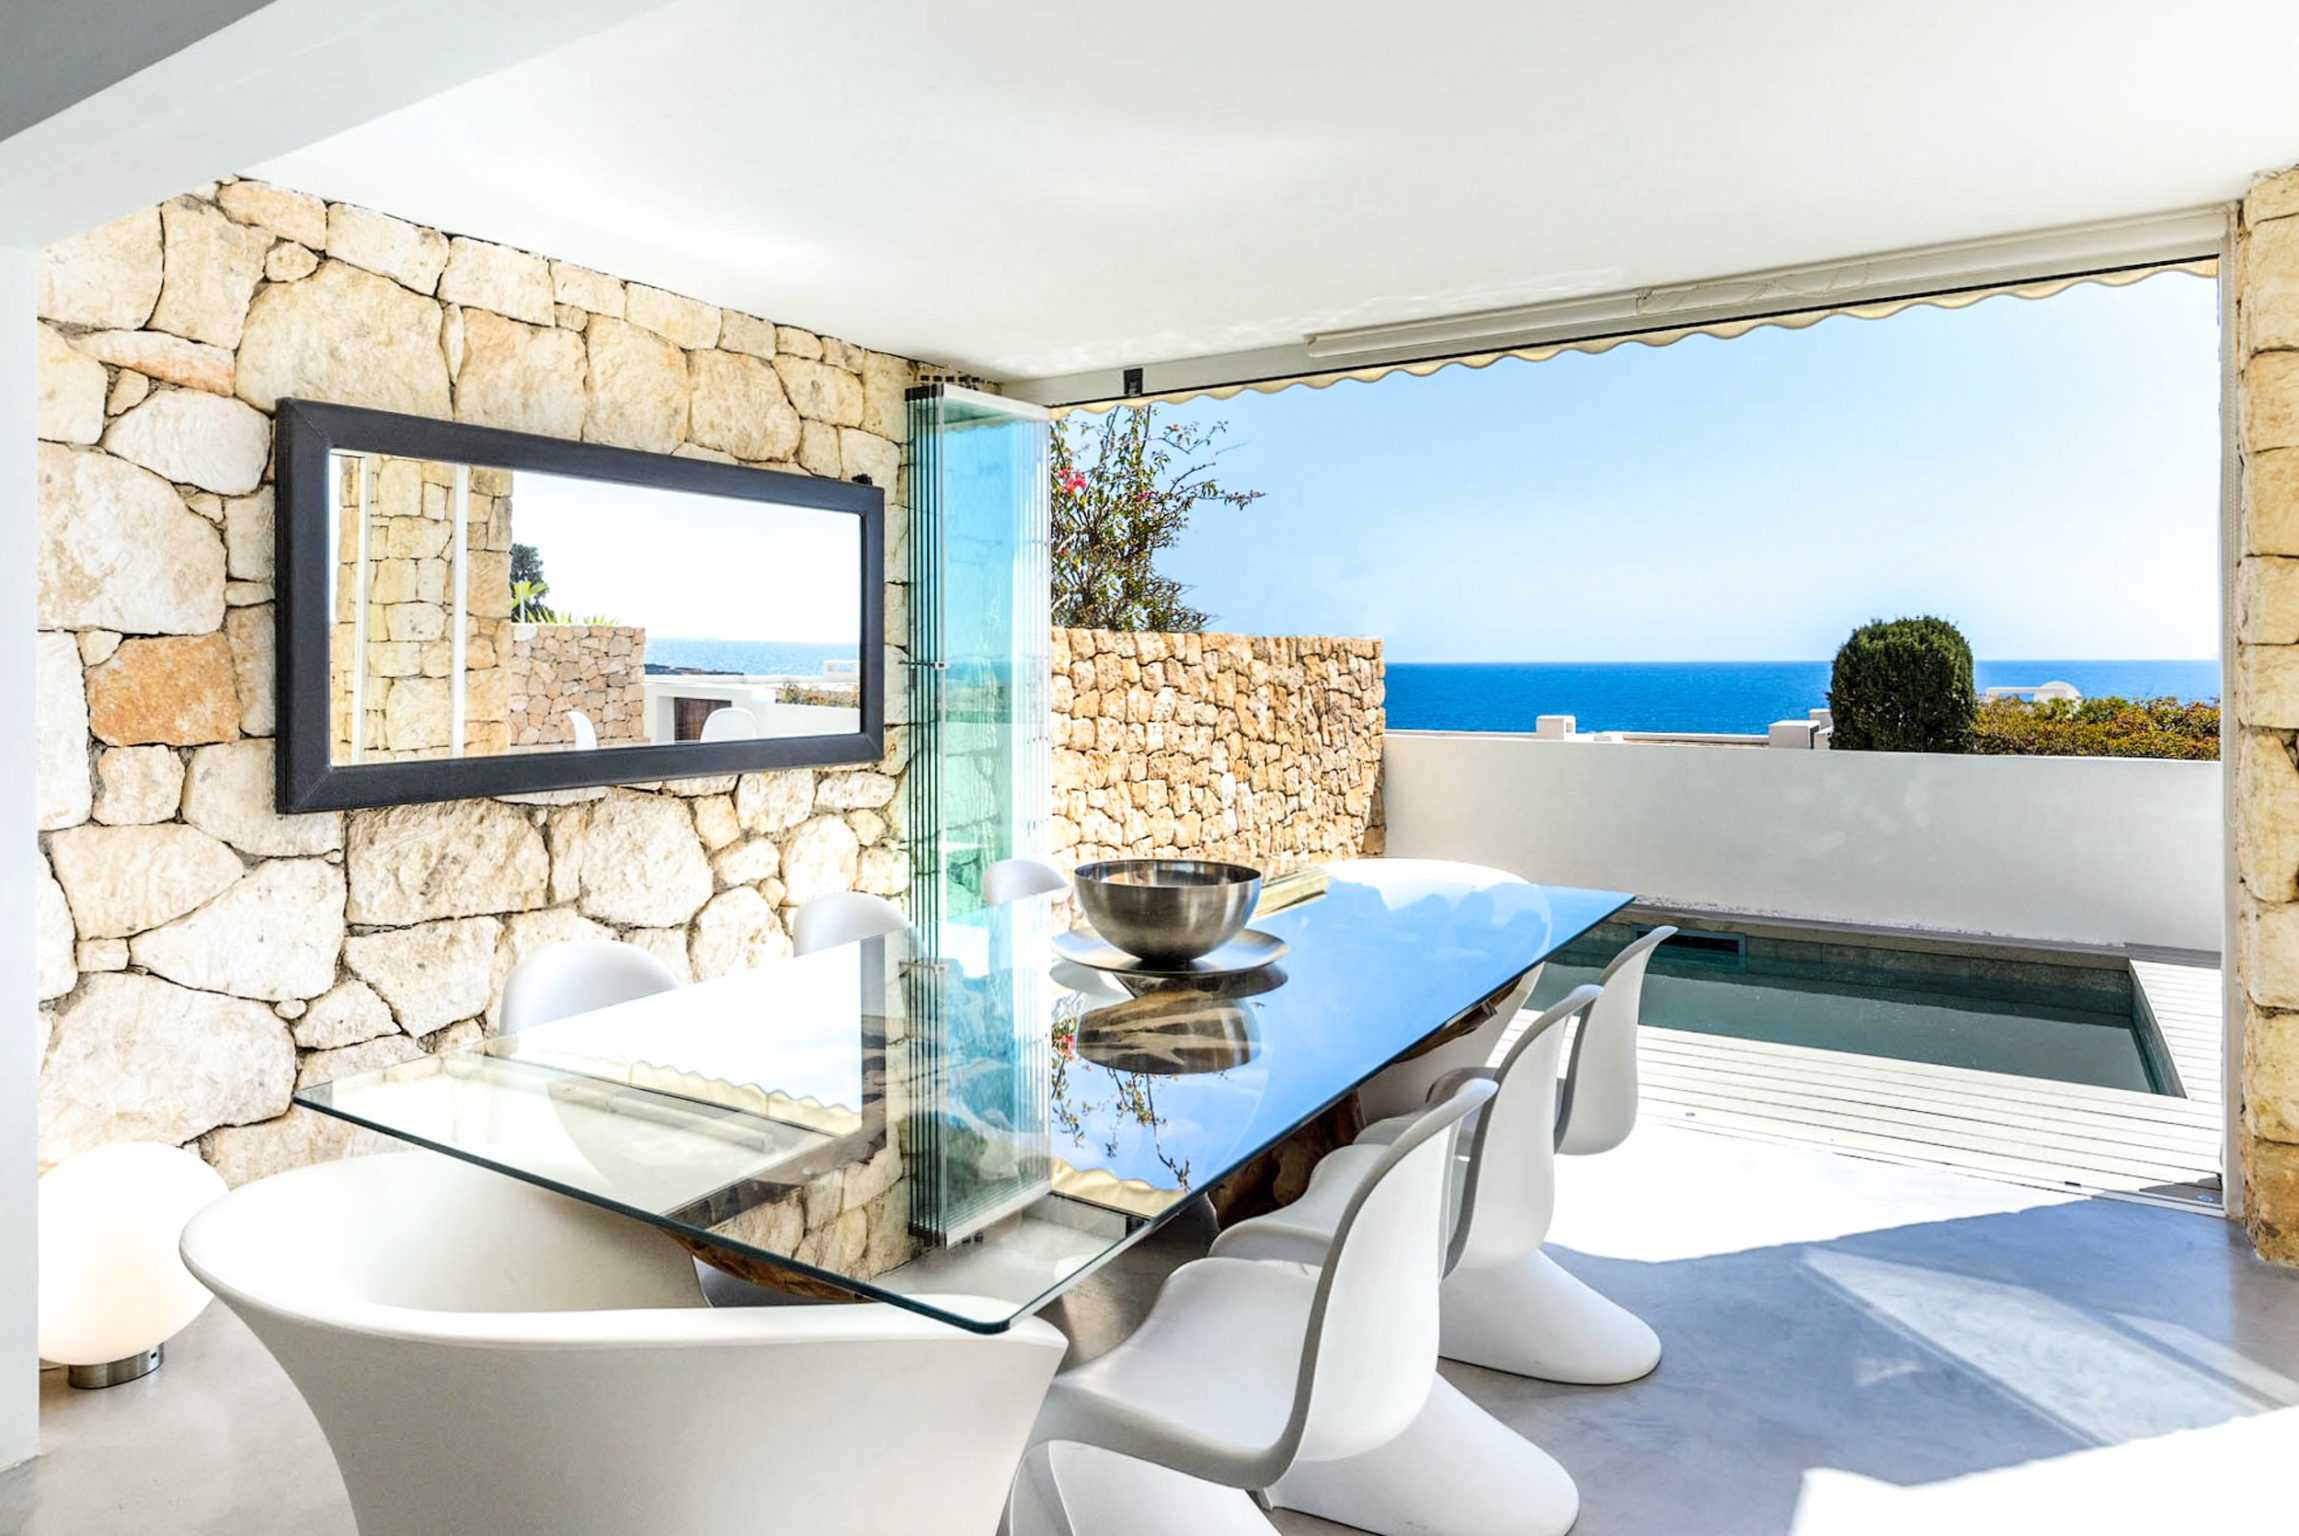 https://www.white-ibiza.com/wp-content/uploads/2020/03/white-ibiza-property-WI181-2020-10-2299x1536.jpg